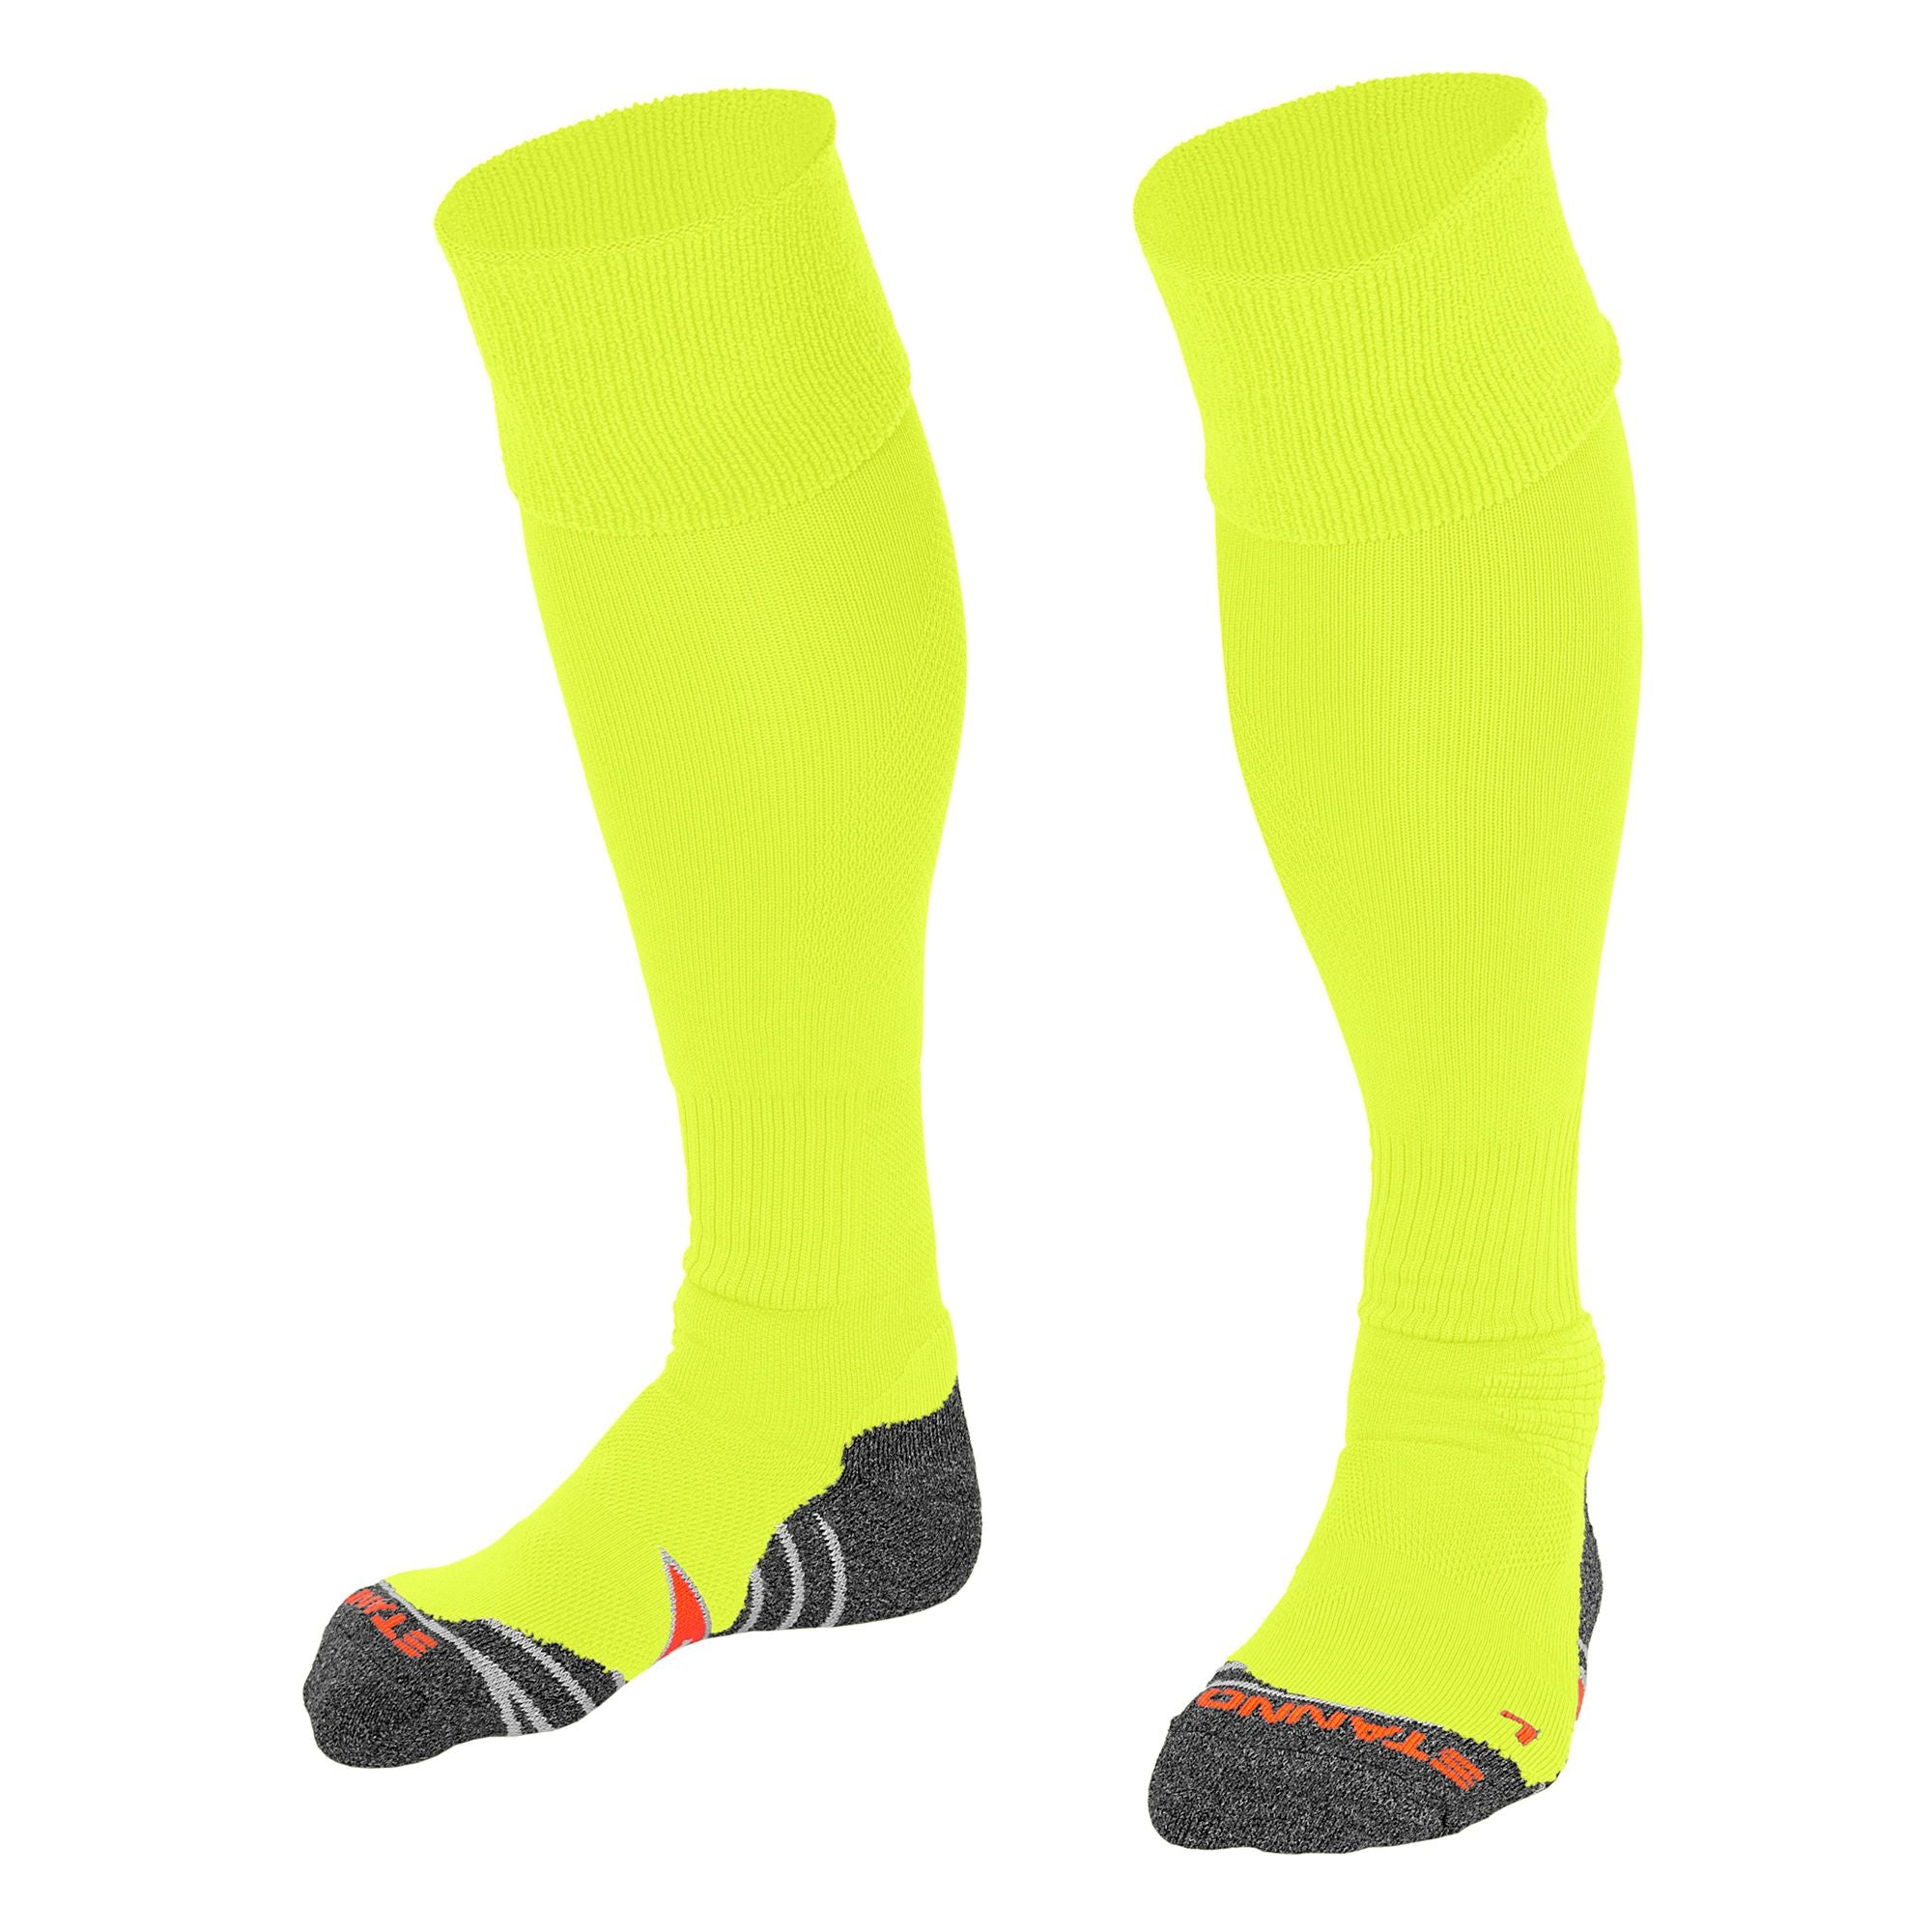 Stanno Uni Sock II football sock in neon yellow with grey, white and orange sole